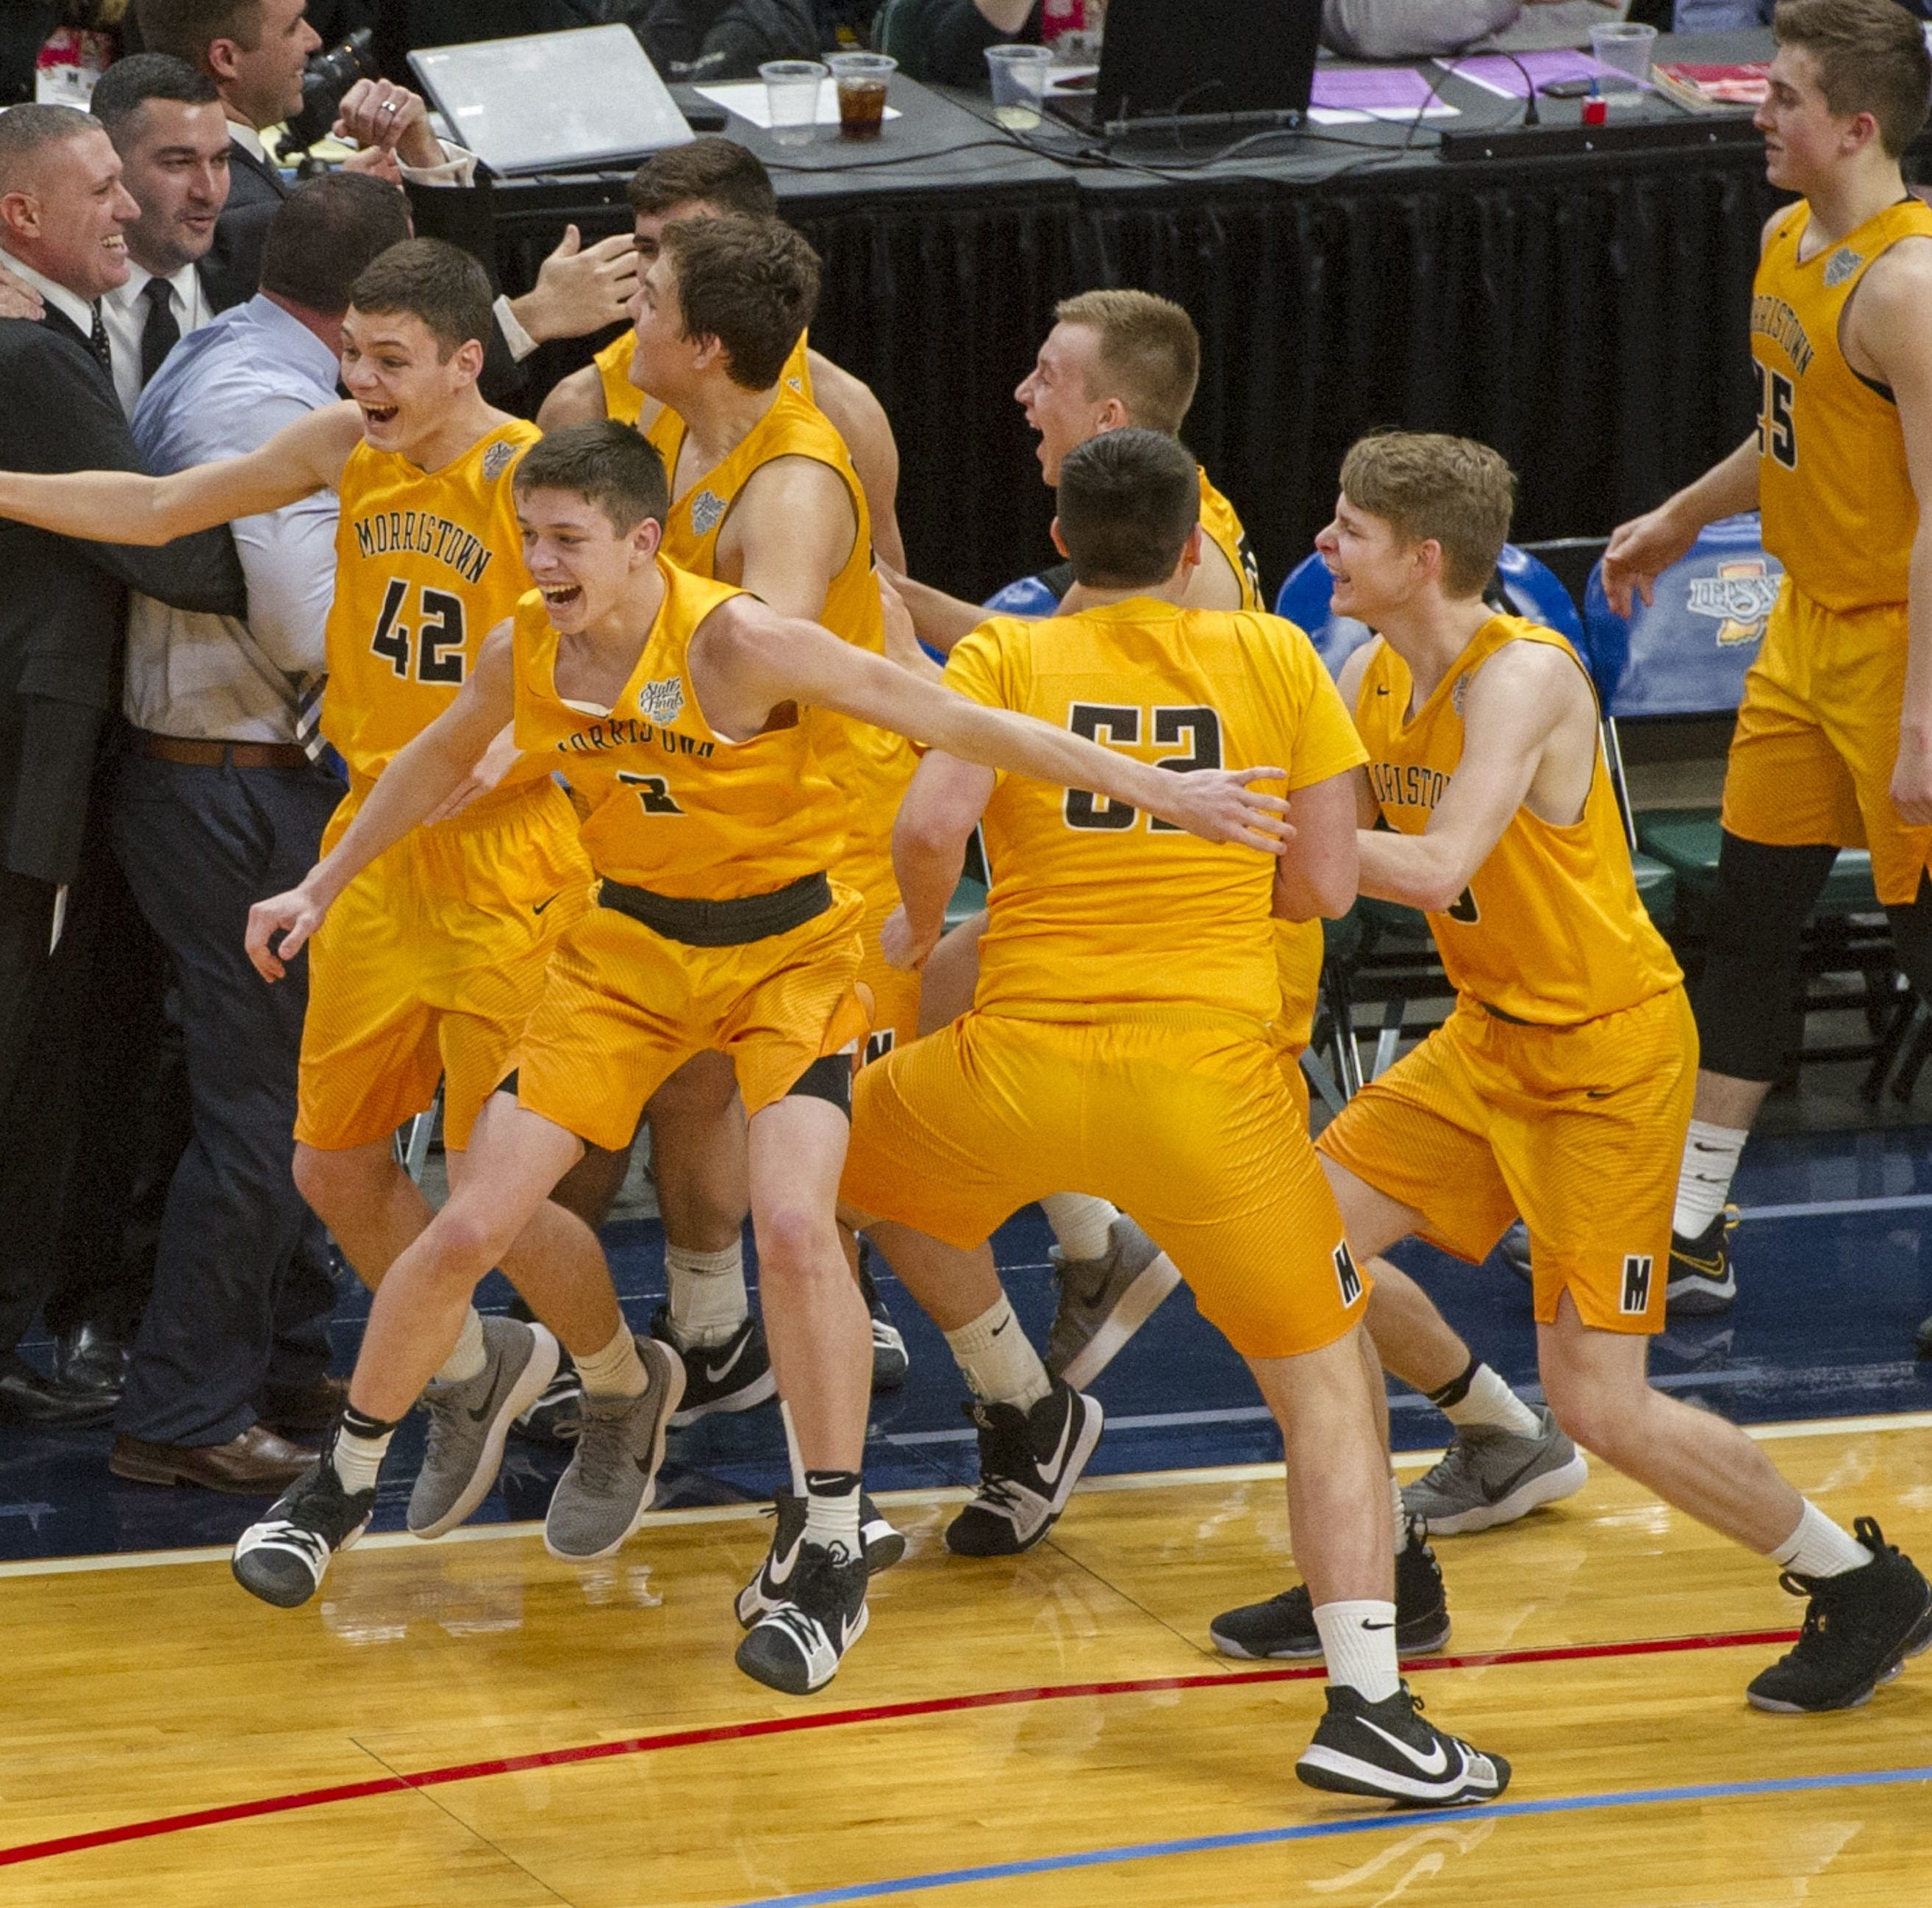 IHSAA basketball sectional draw live blog: Class A is complete